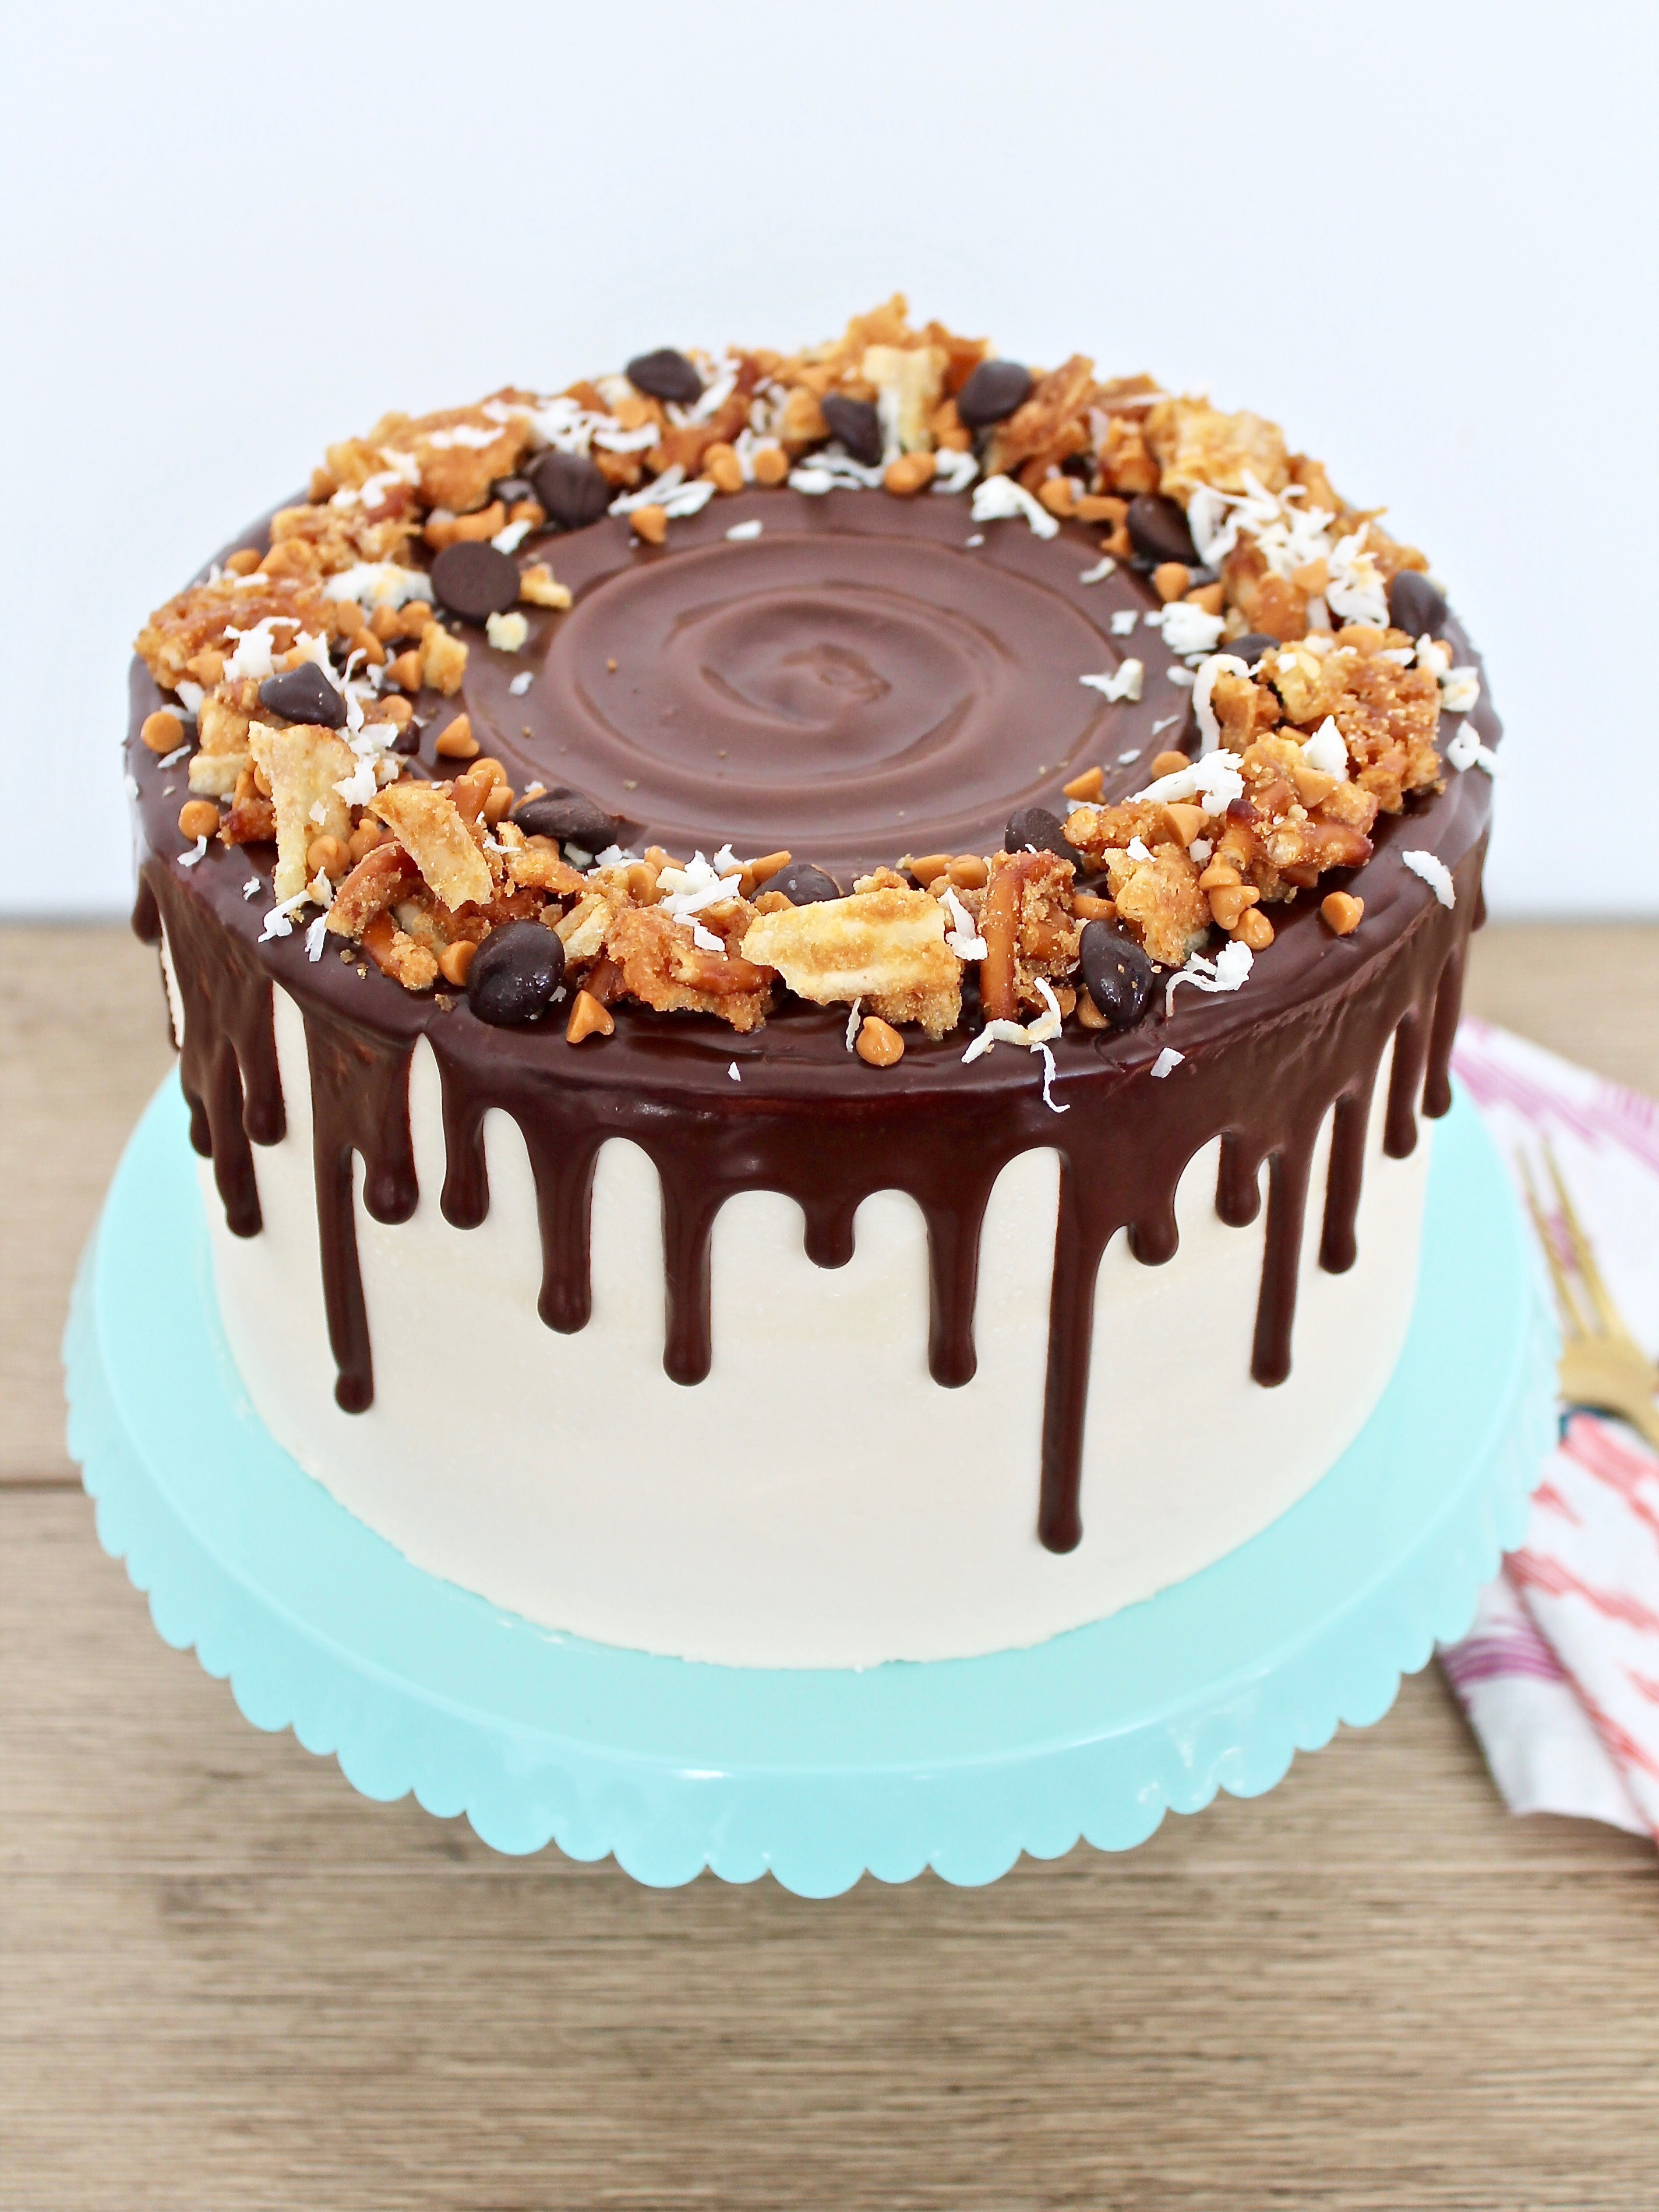 this cake you guys i think youre going to go nuts over this one with potato chips and pretzels baked into a toffee like bark for the filling - Everything But The Kitchen Sink